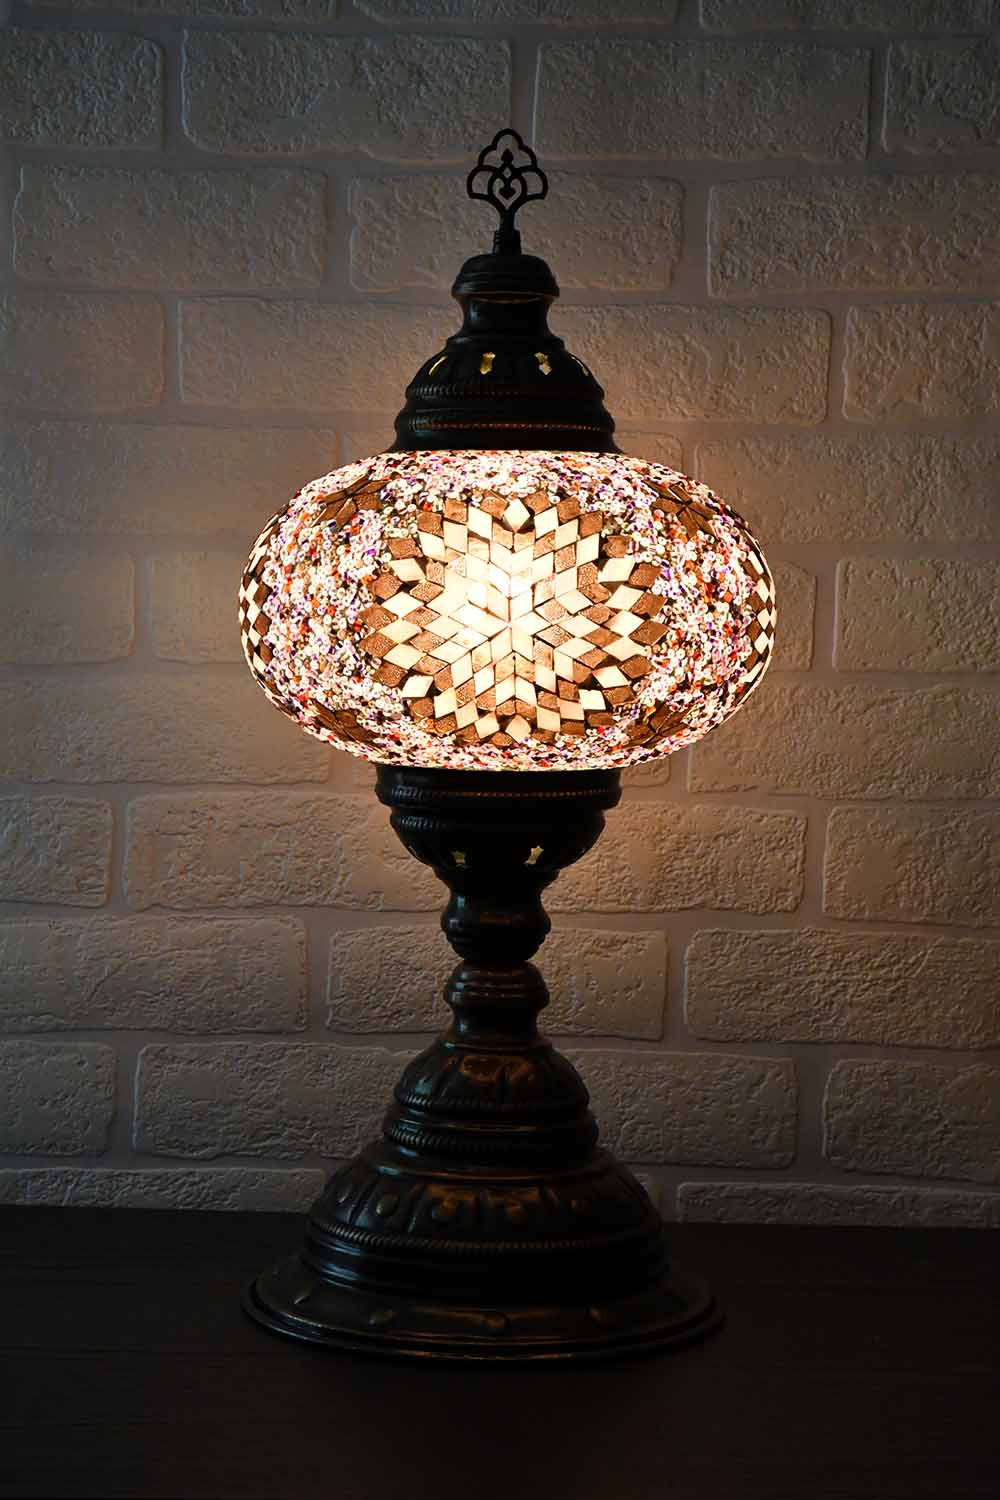 Turkish Table Lamp Large Purple Pink Star Beads Lighting Sydney Grand Bazaar